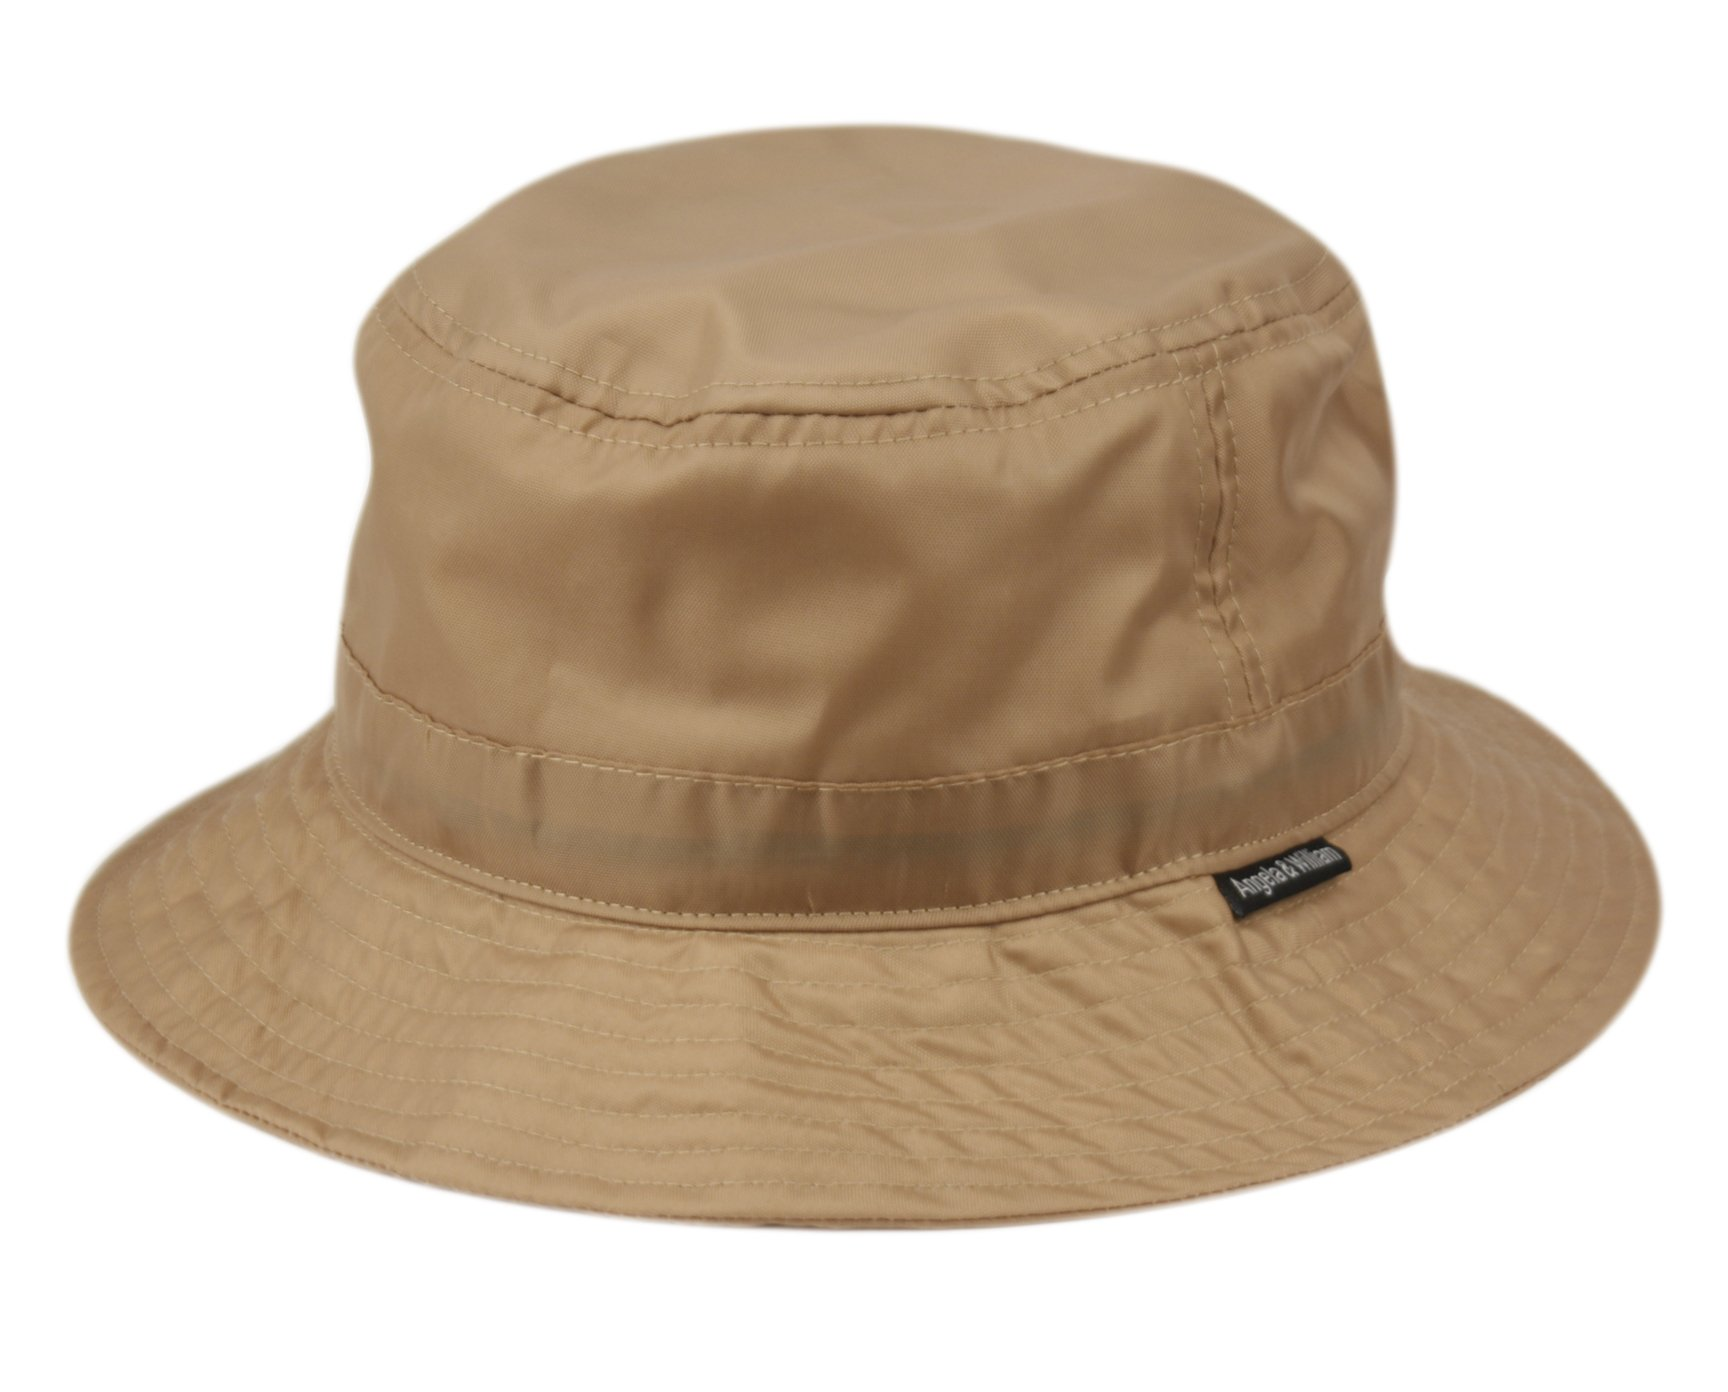 ANGELA & WILLIAM Waterproof Bucket Rain Hat in Nylon (A Khaki)